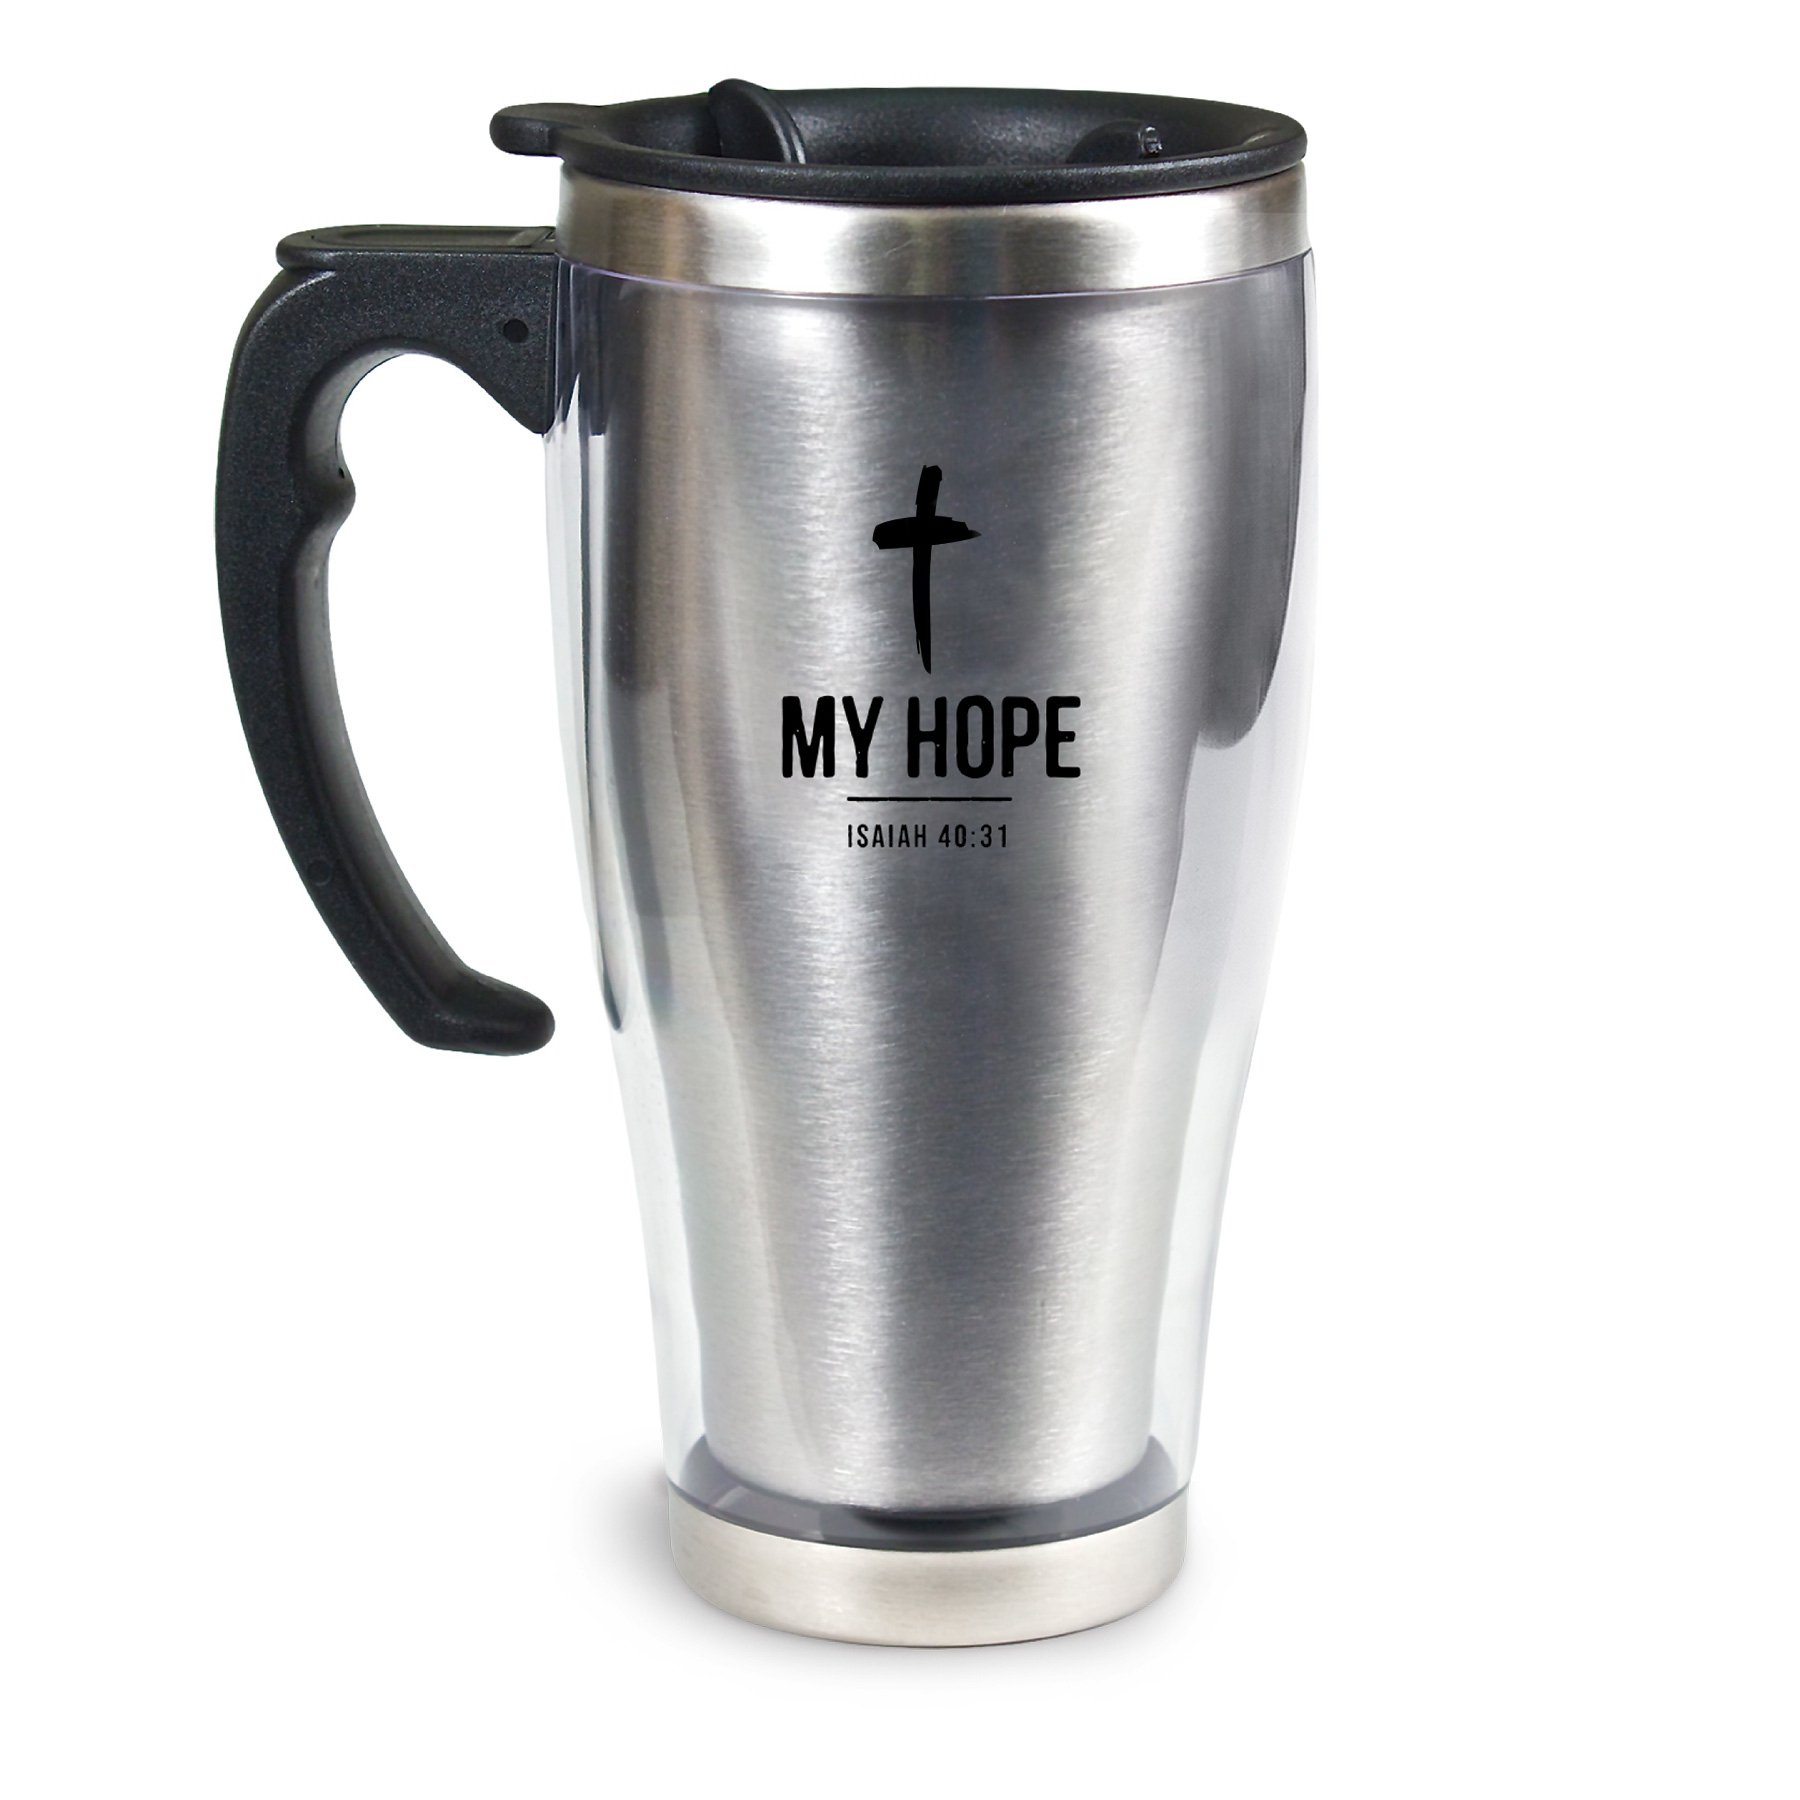 Lighthouse Christian Products My Hope Acrylic/Stainless Steel Travel Mug, 18 oz by Lighthouse Christian Products